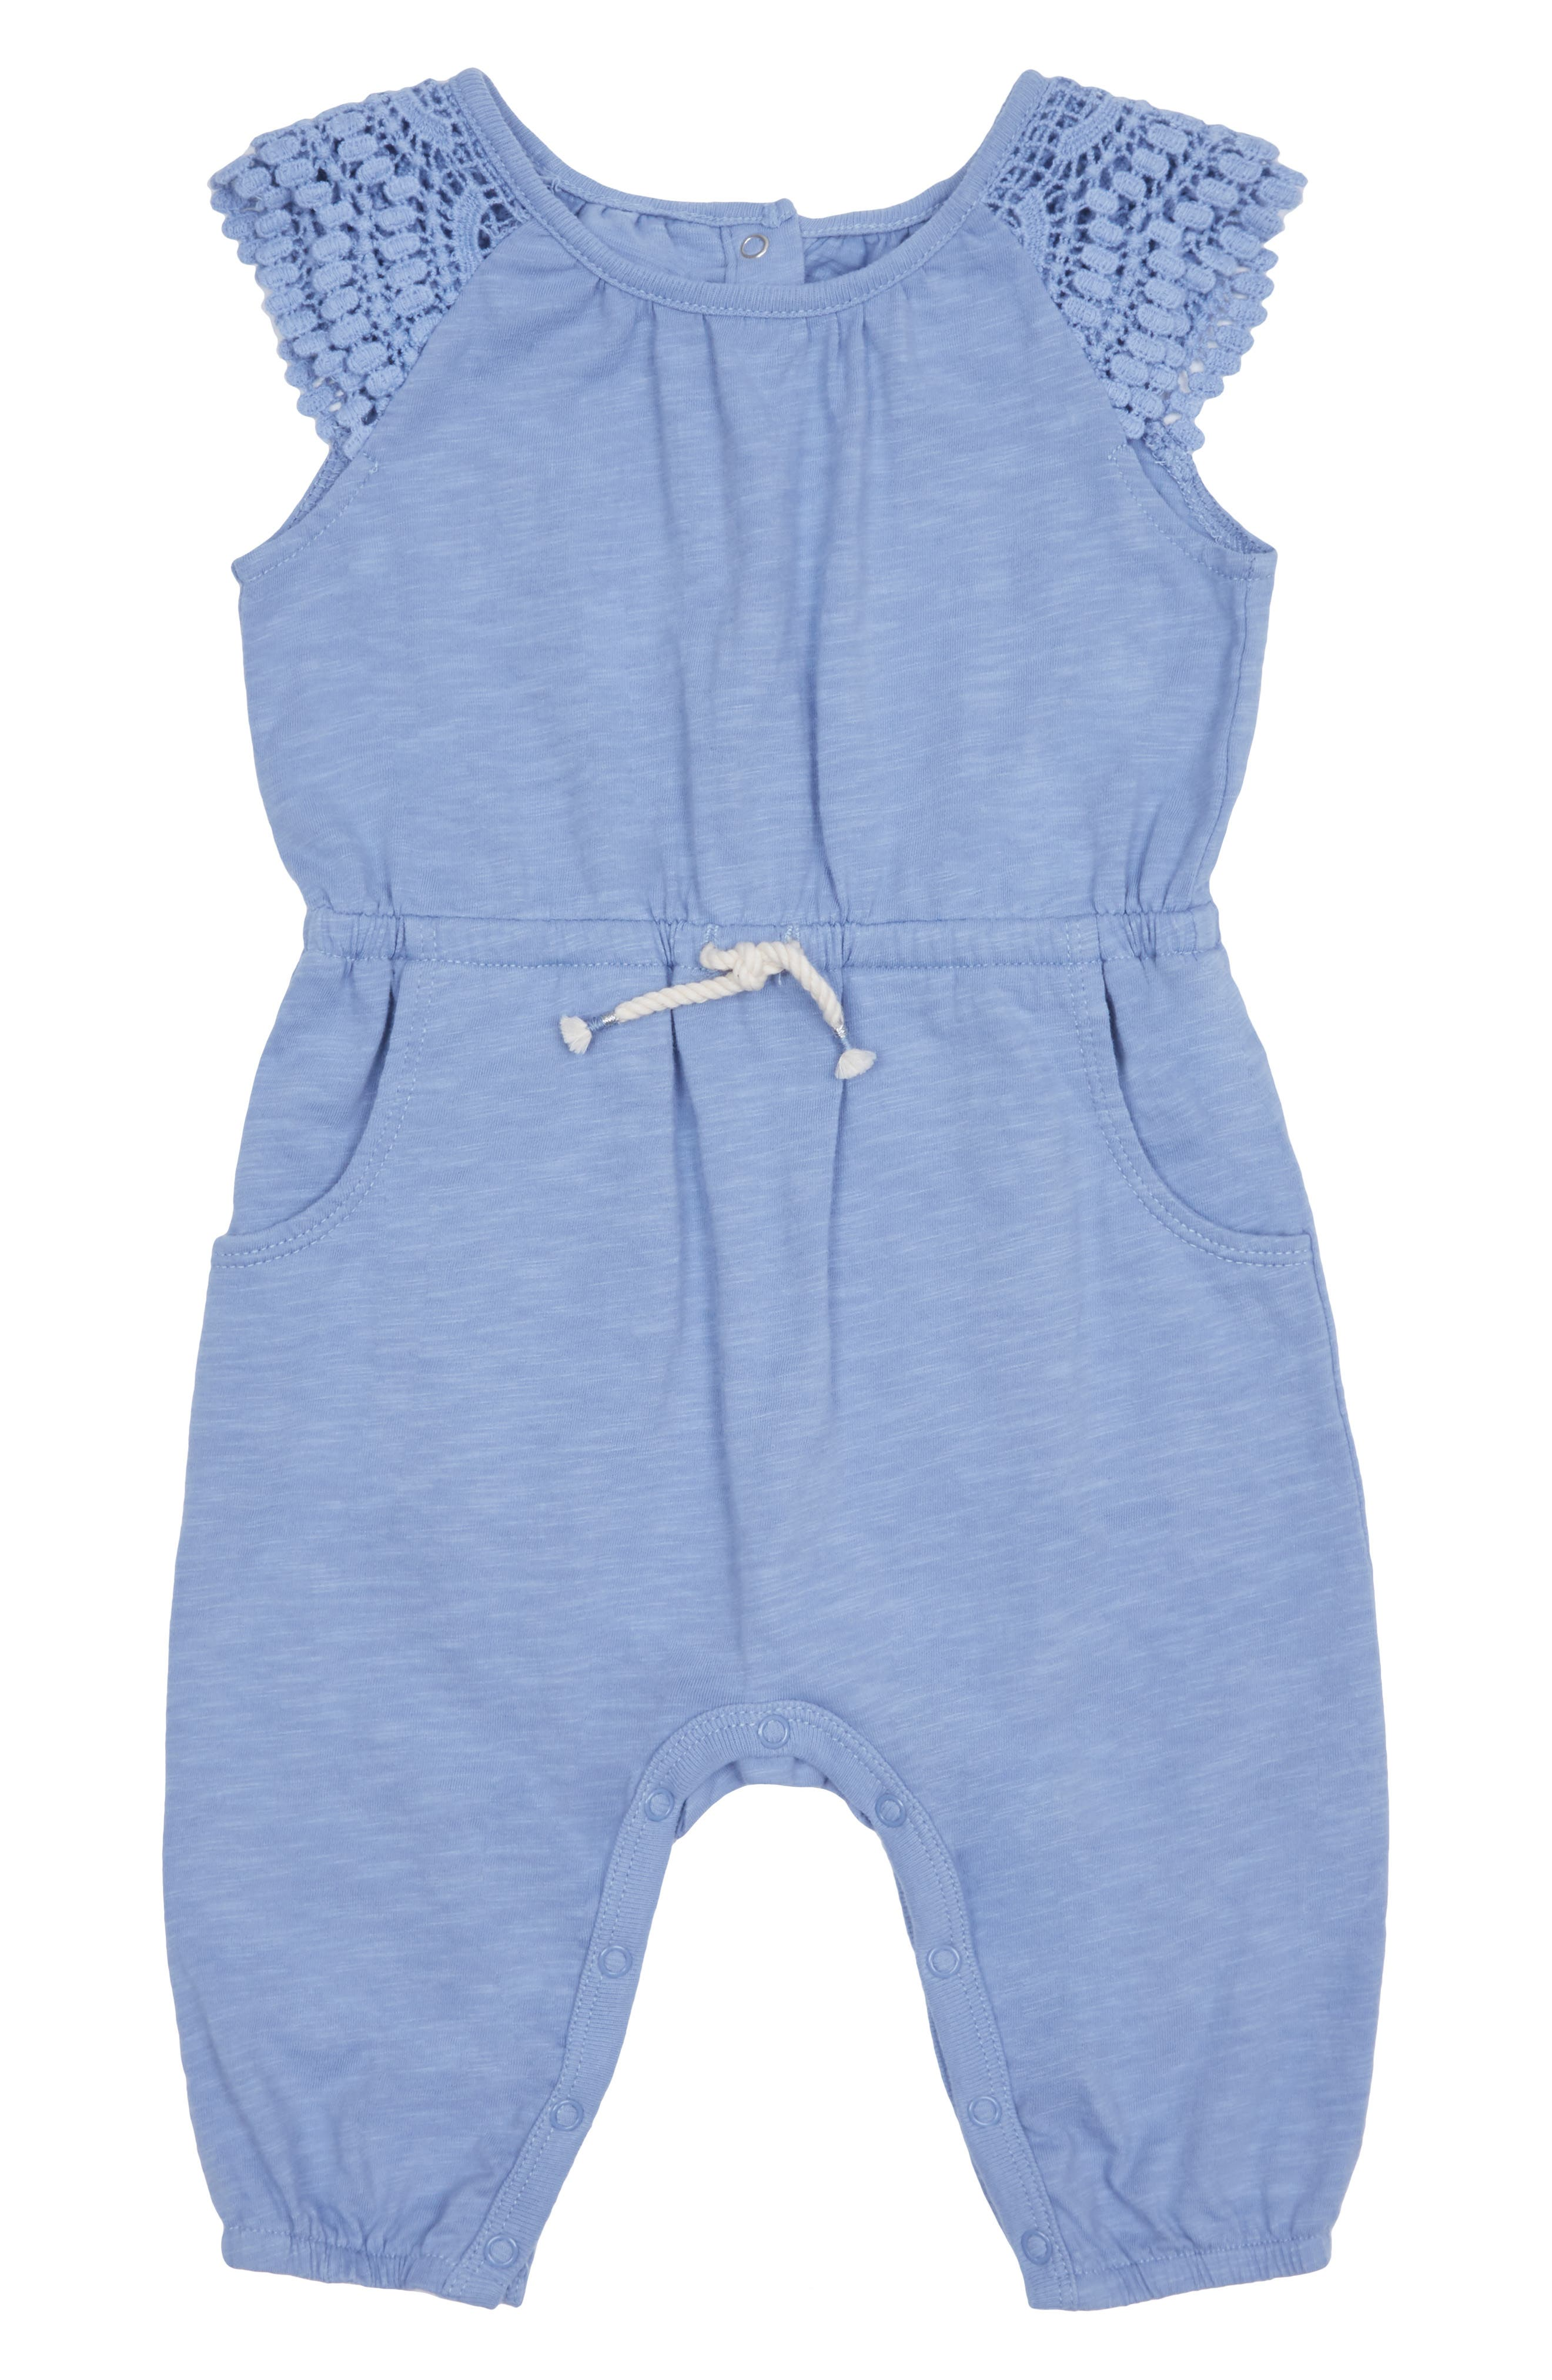 Birds Animals 1 Baby Boys Jumpsuit One Piece Baby Playsuit Clothing